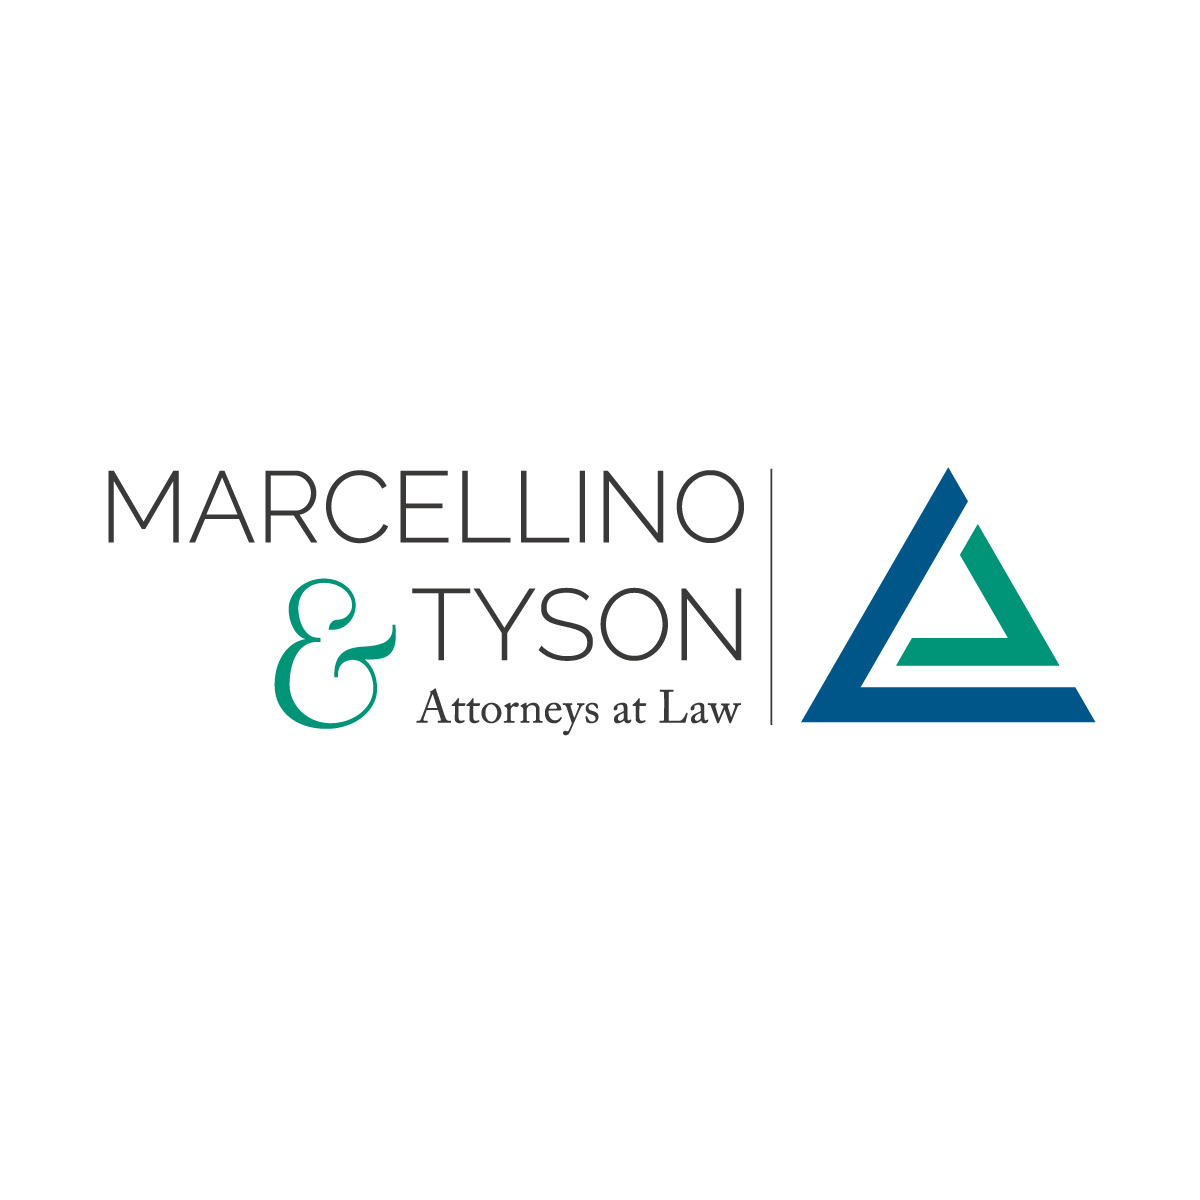 Marcellino & Tyson, PLLC Profile Picture